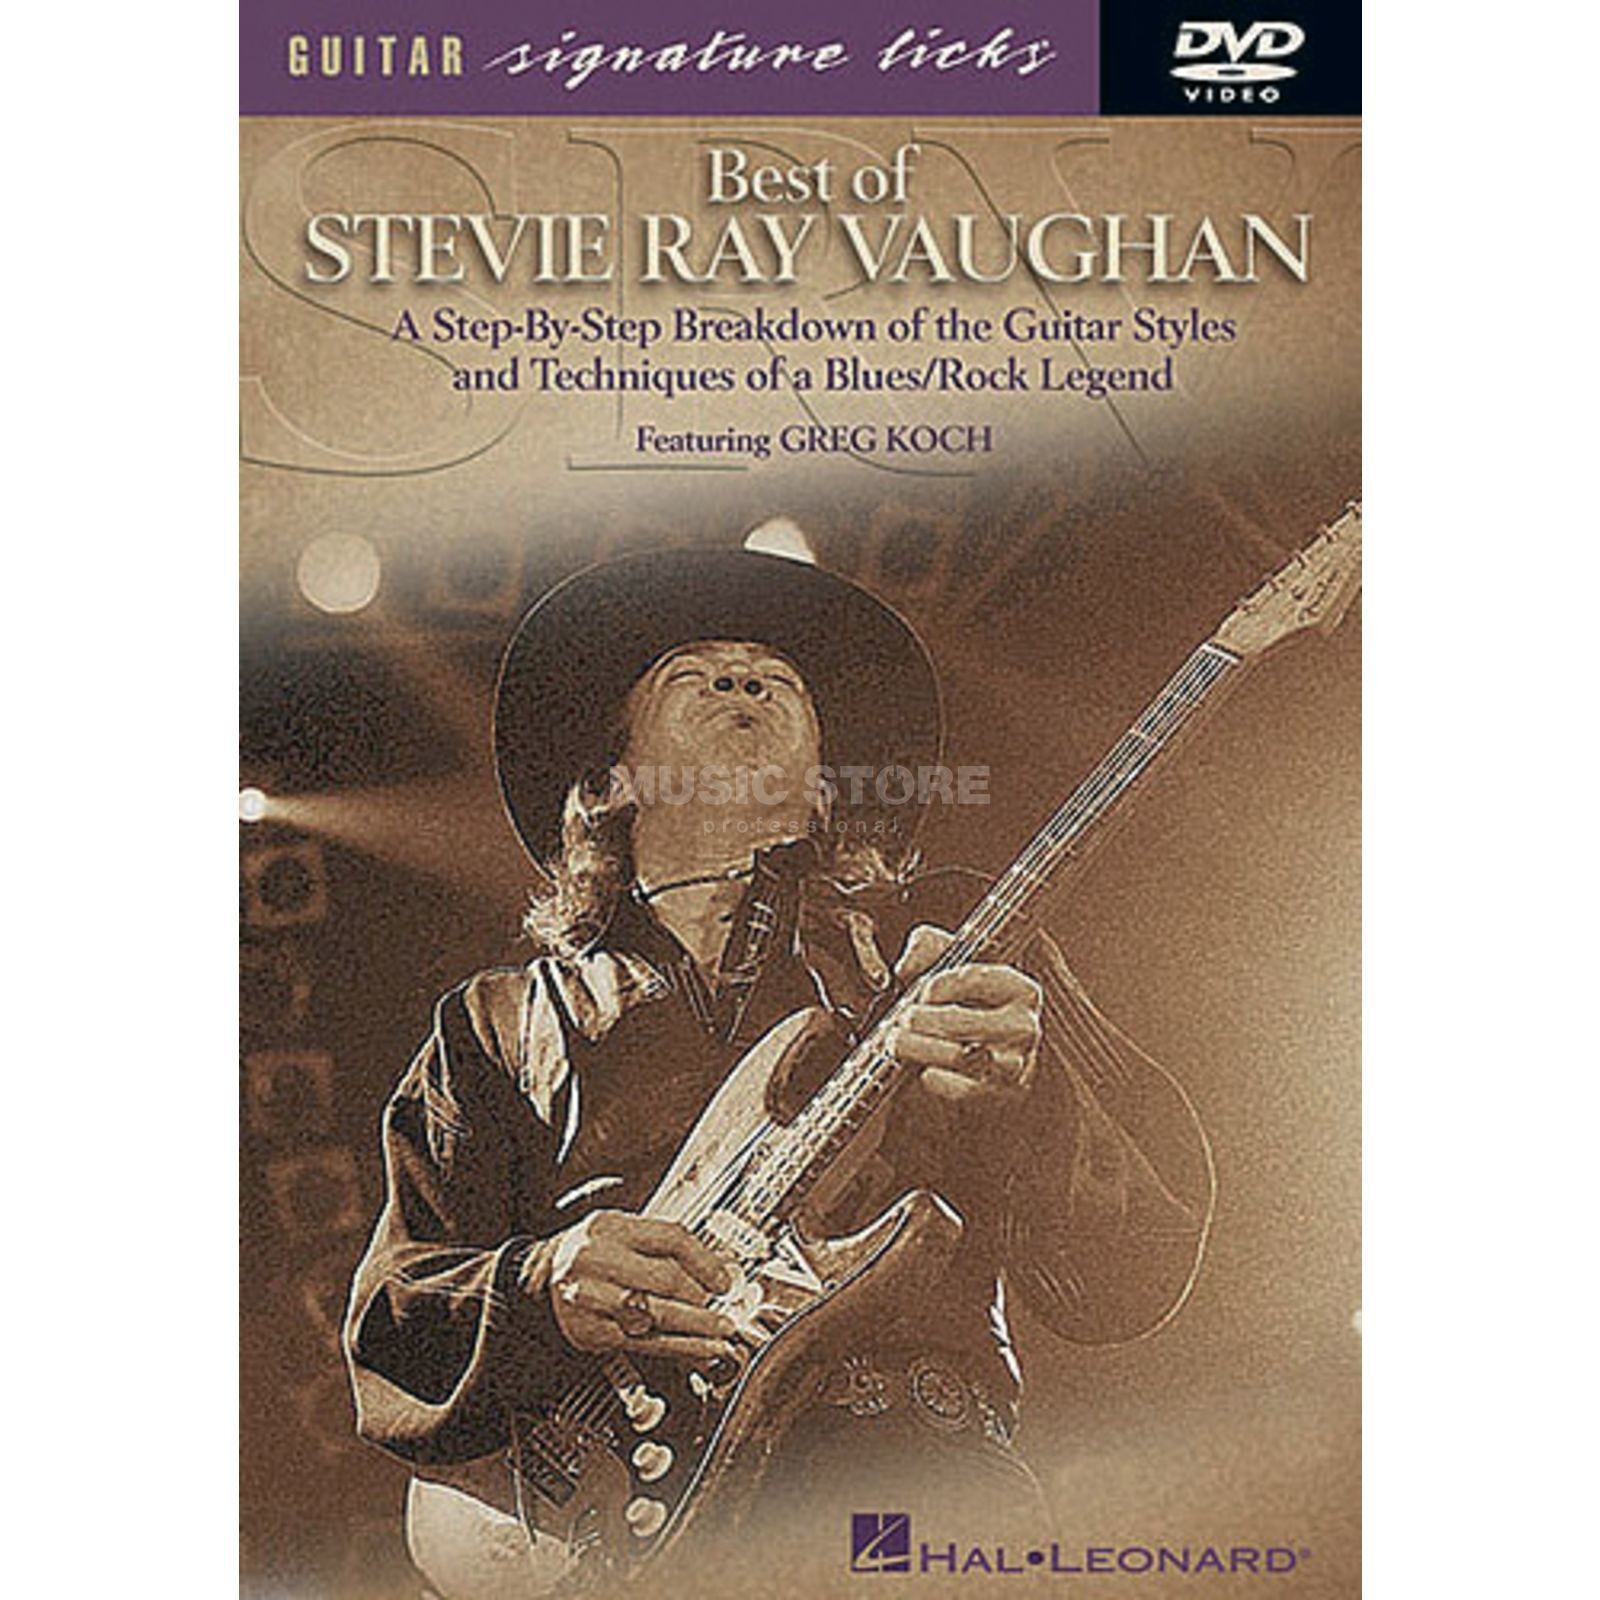 Hal Leonard Best Of Stevie Ray Vaughan Guitar Signature Licks, DVD Produktbillede